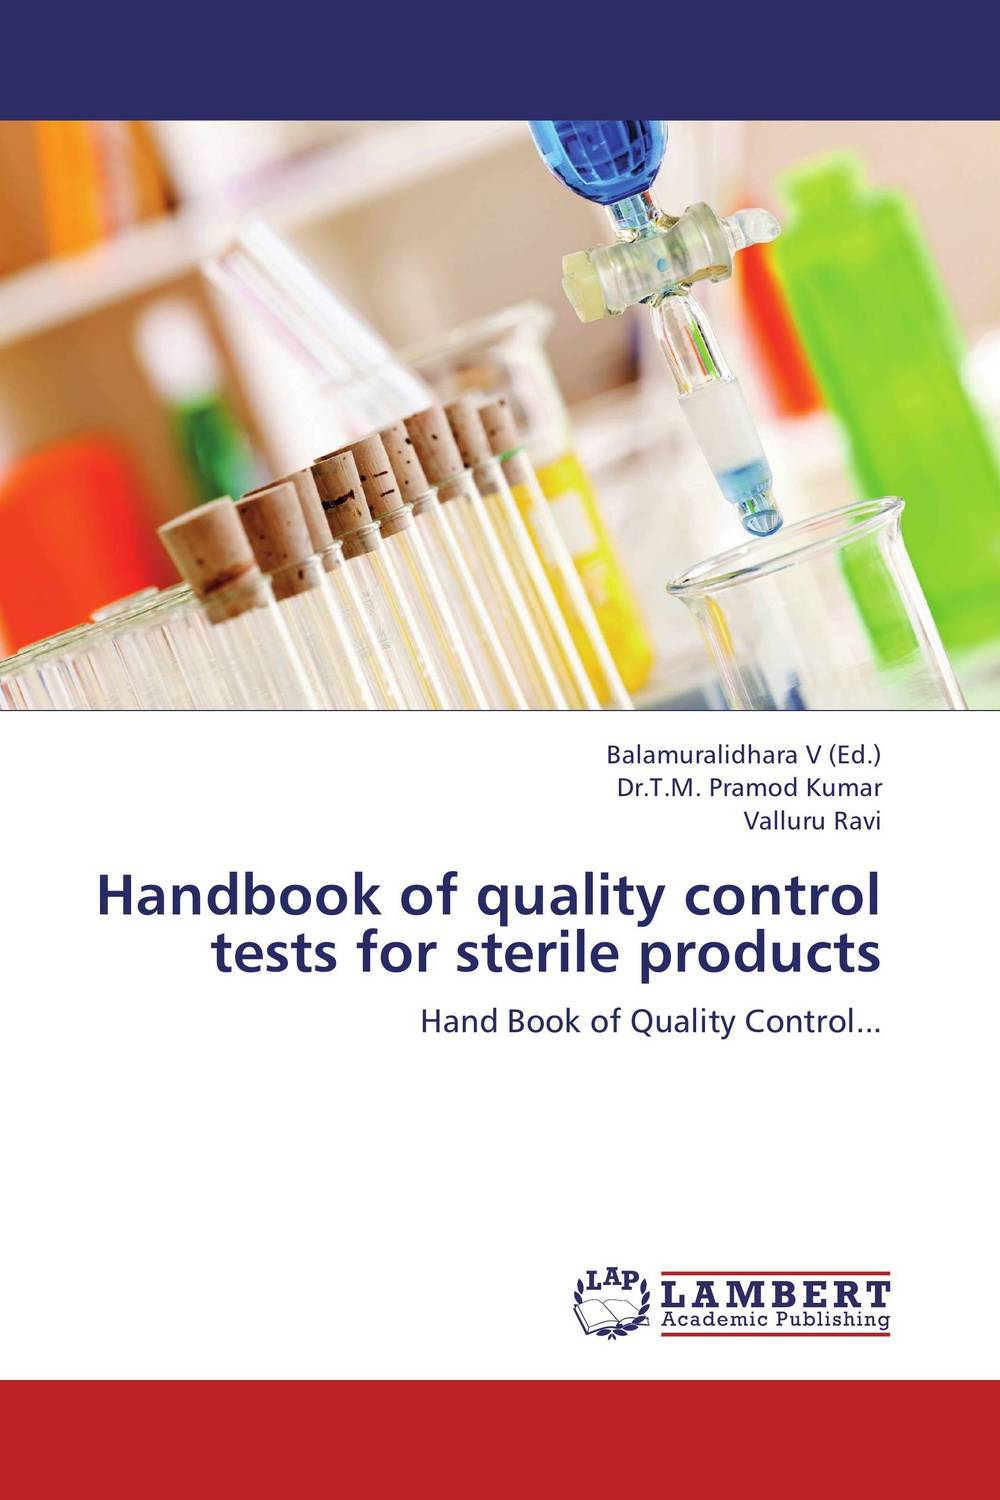 Handbook of quality control tests for sterile products leo melamed the cme group risk management handbook products and applications